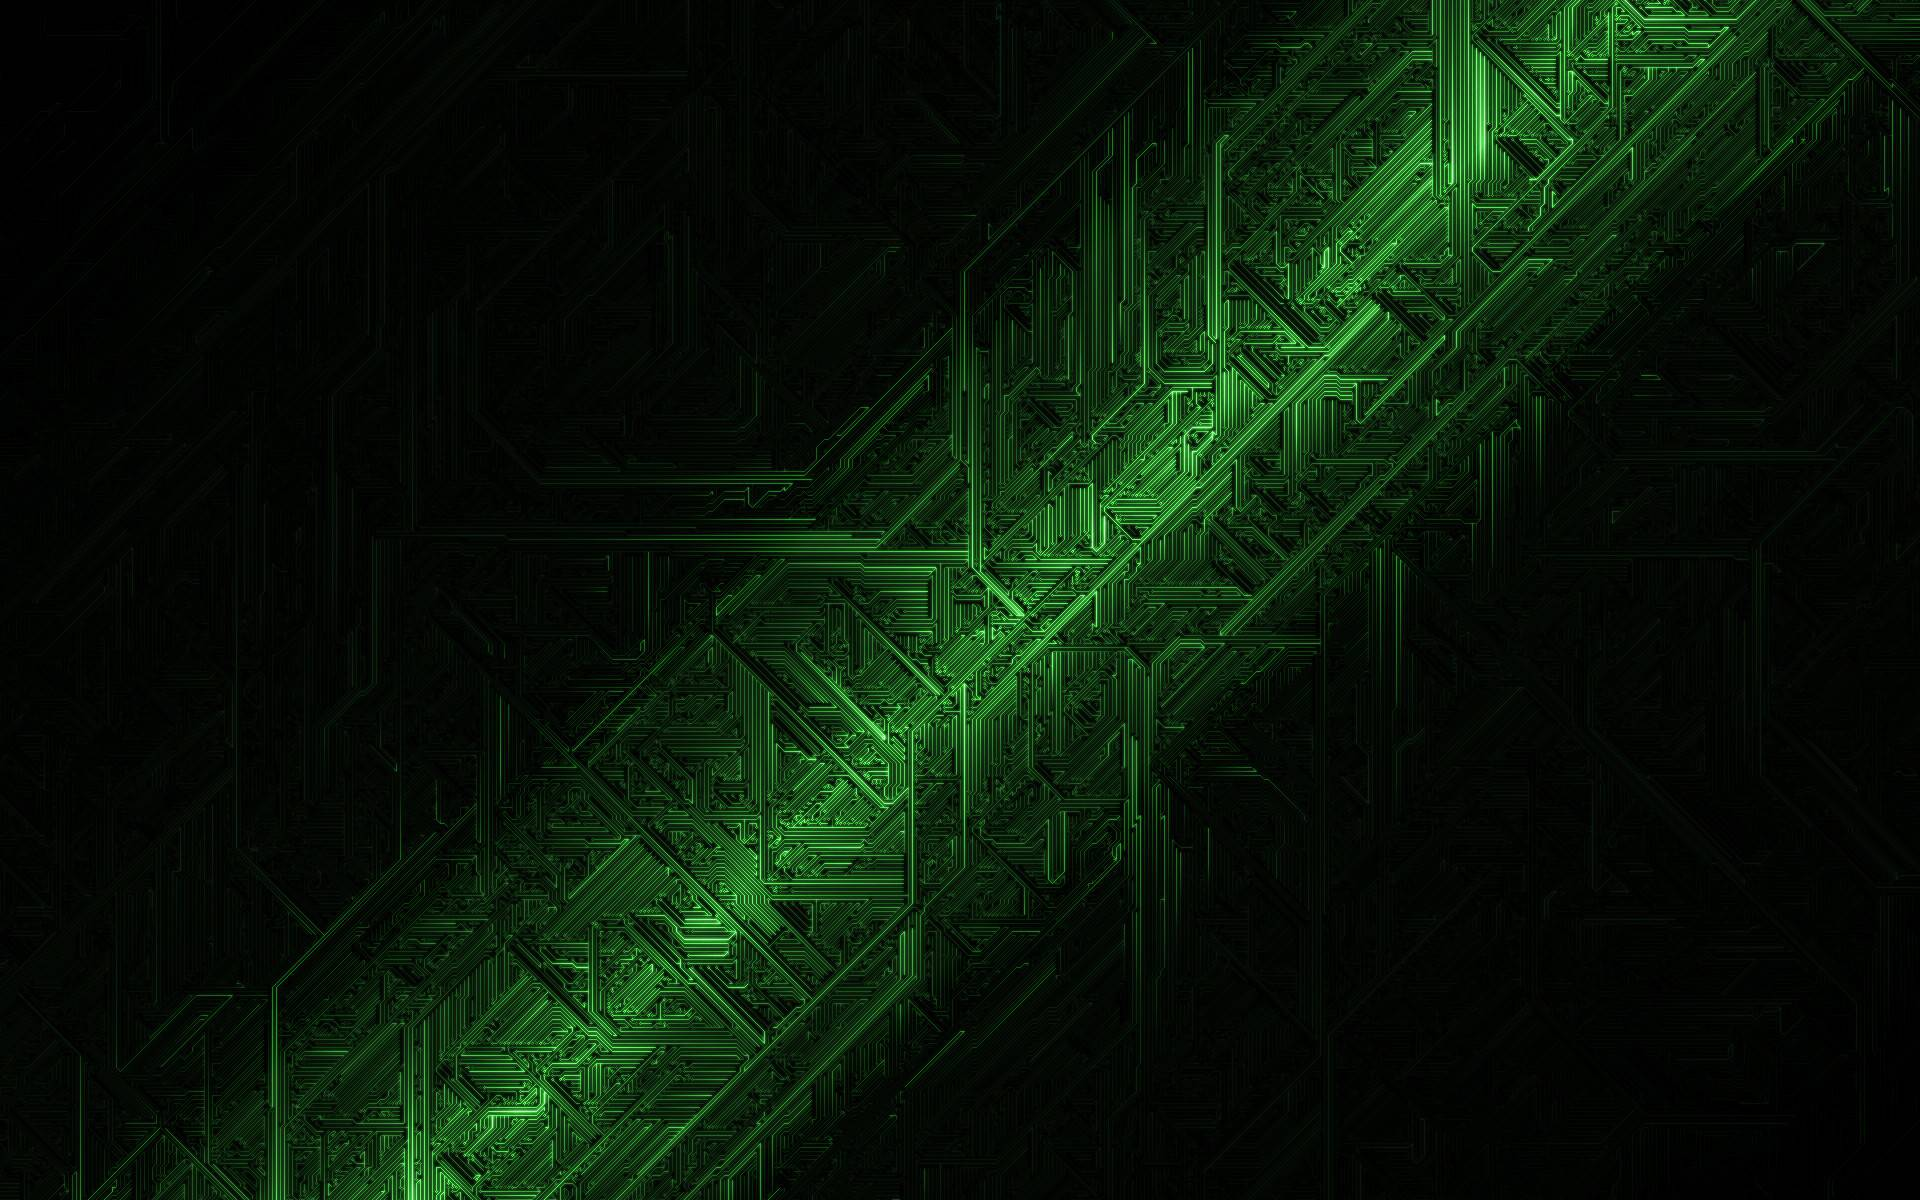 historical wallpaper with green - photo #21